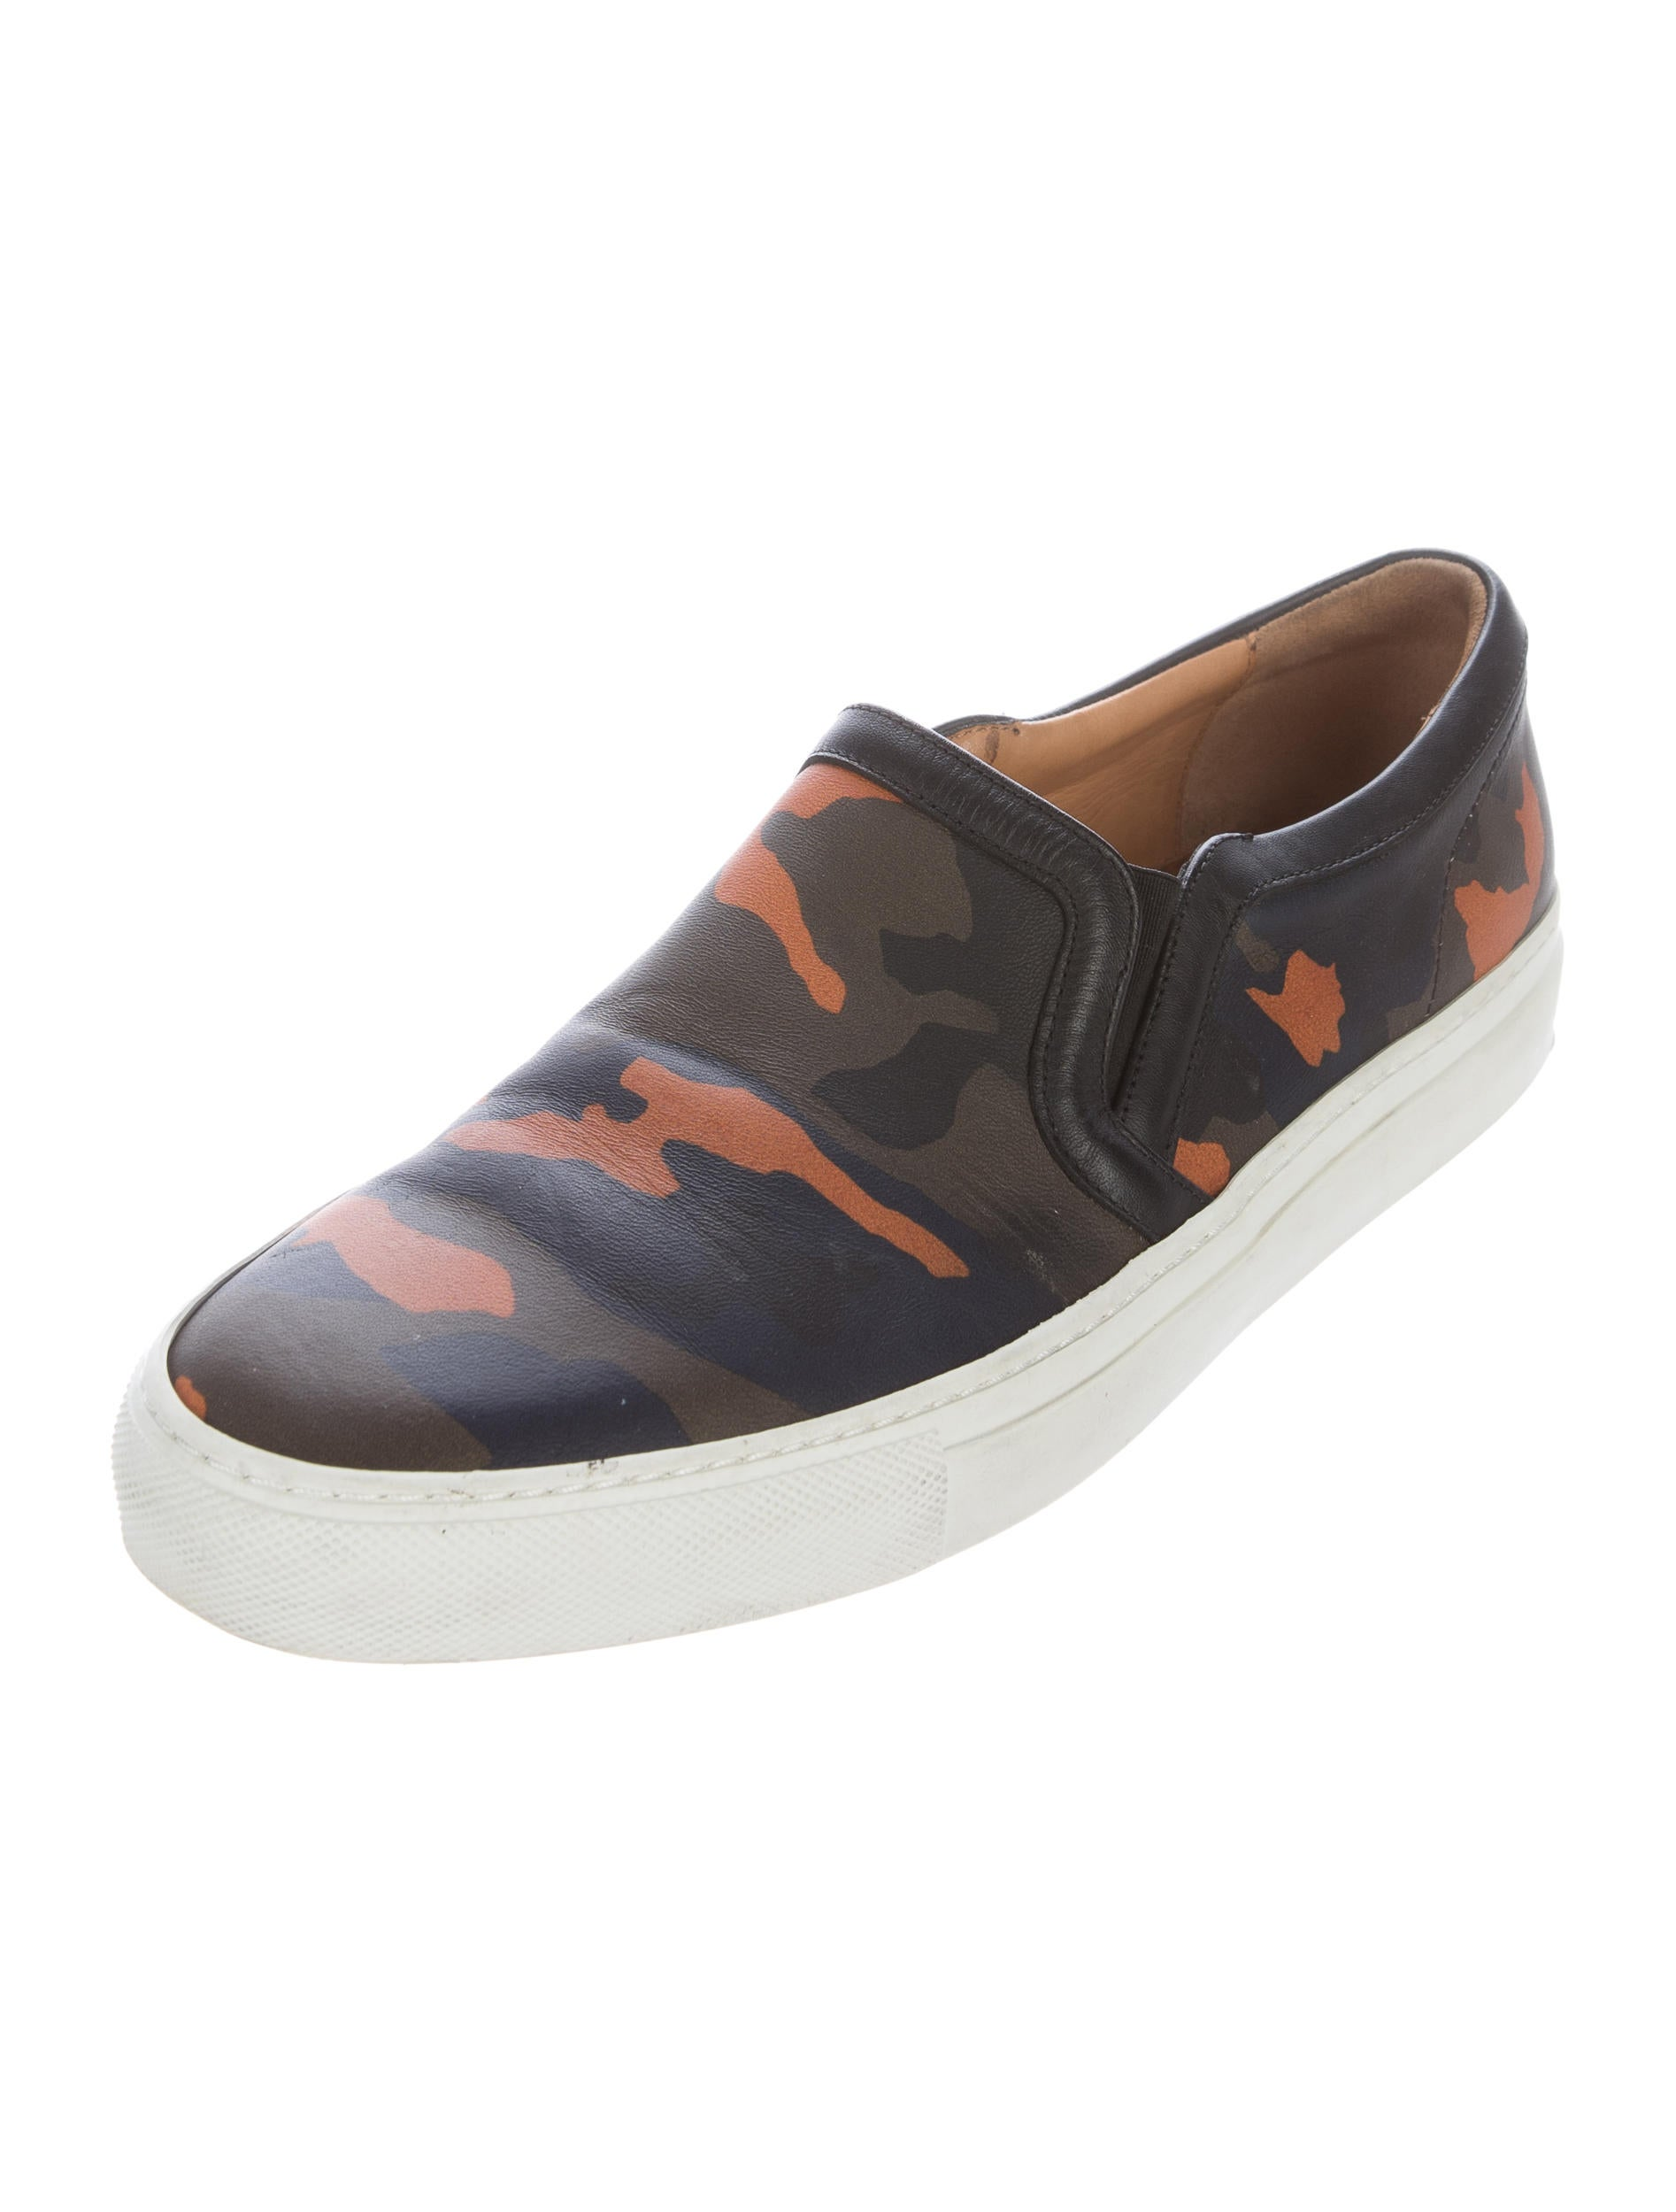 givenchy camouflage slip on sneakers shoes giv38732